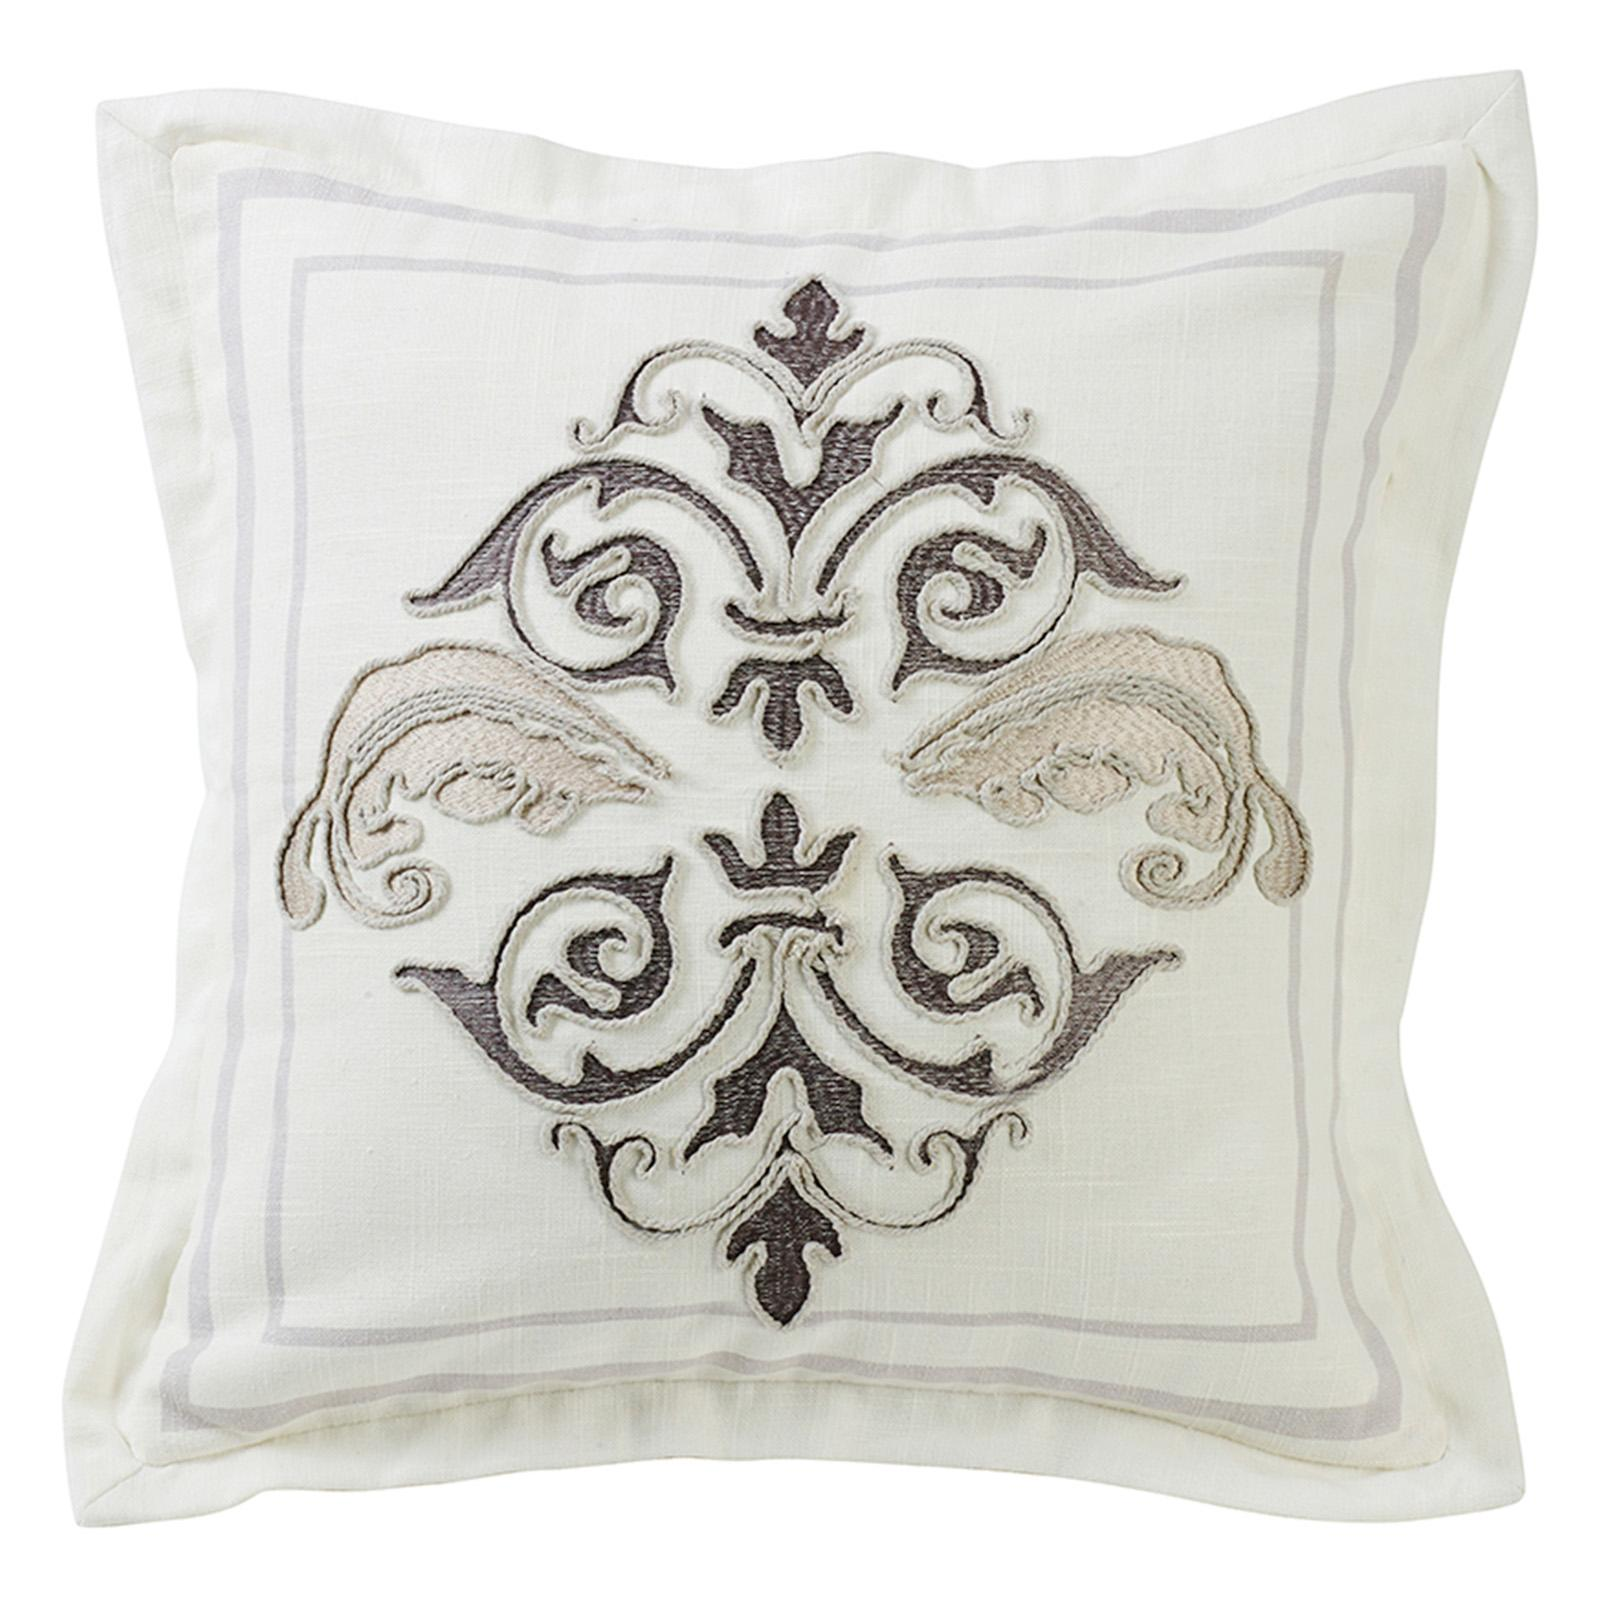 HiEnd Accents Square Outlined Embroidered Design Pillow with Flange - FB4900P1